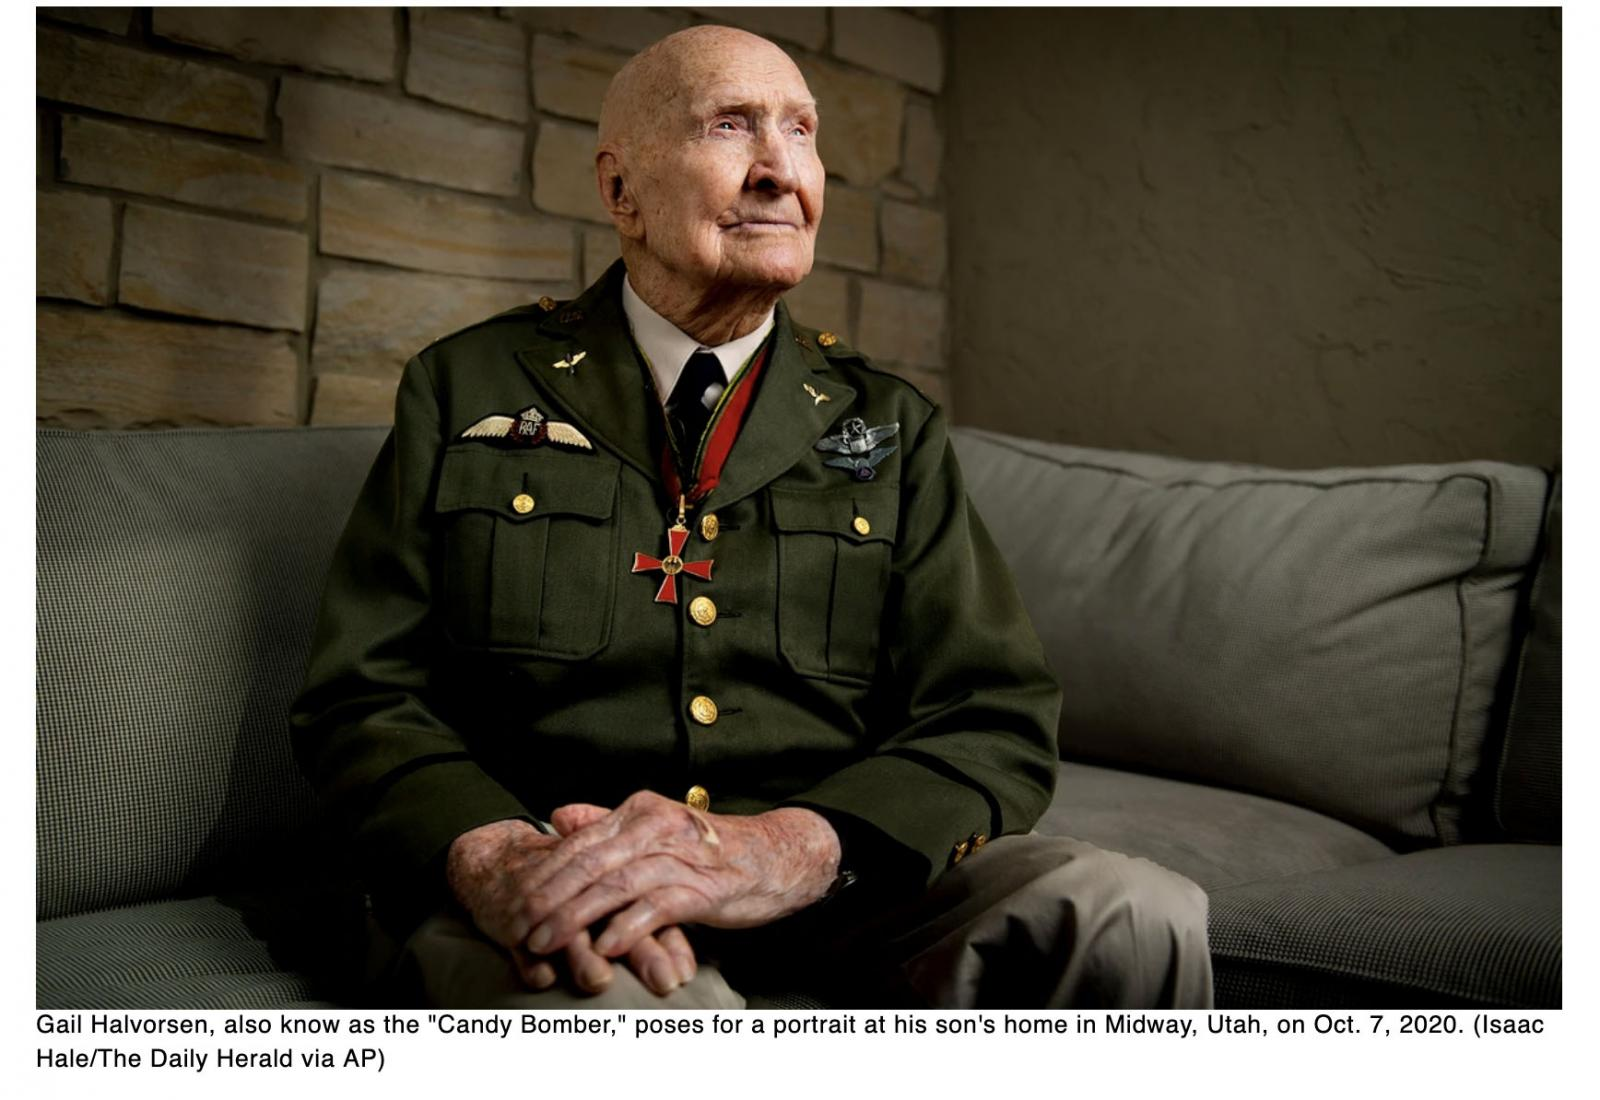 Candy Bomber during Berlin Airlift glides into milestone birthday